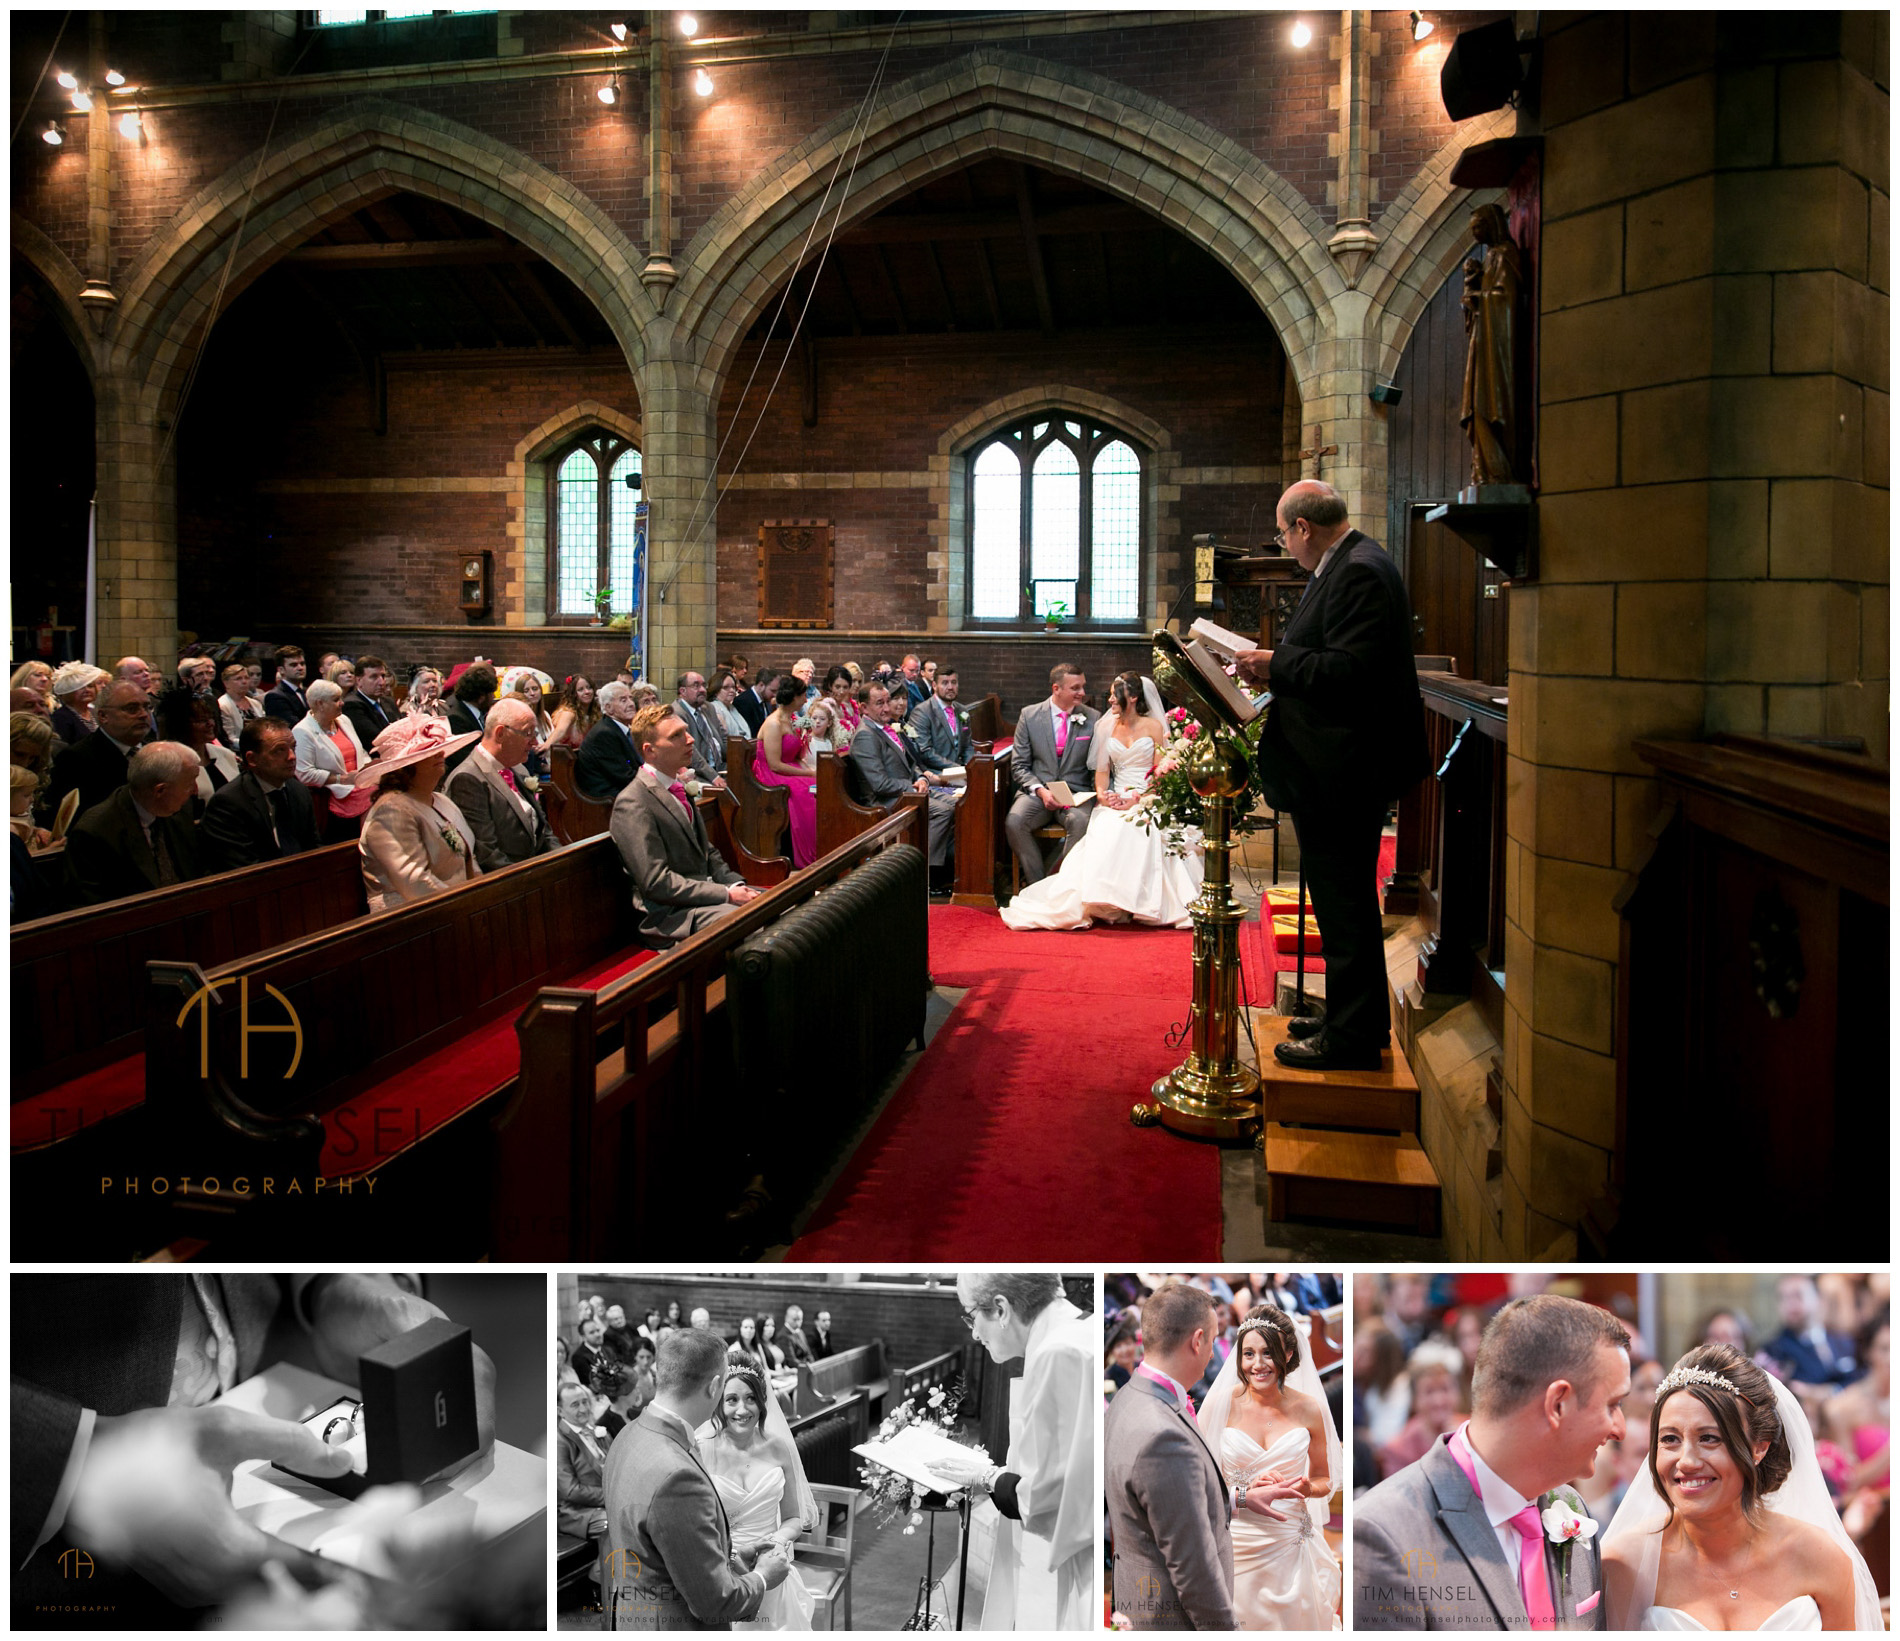 Photographing the details during the wedding ceremony